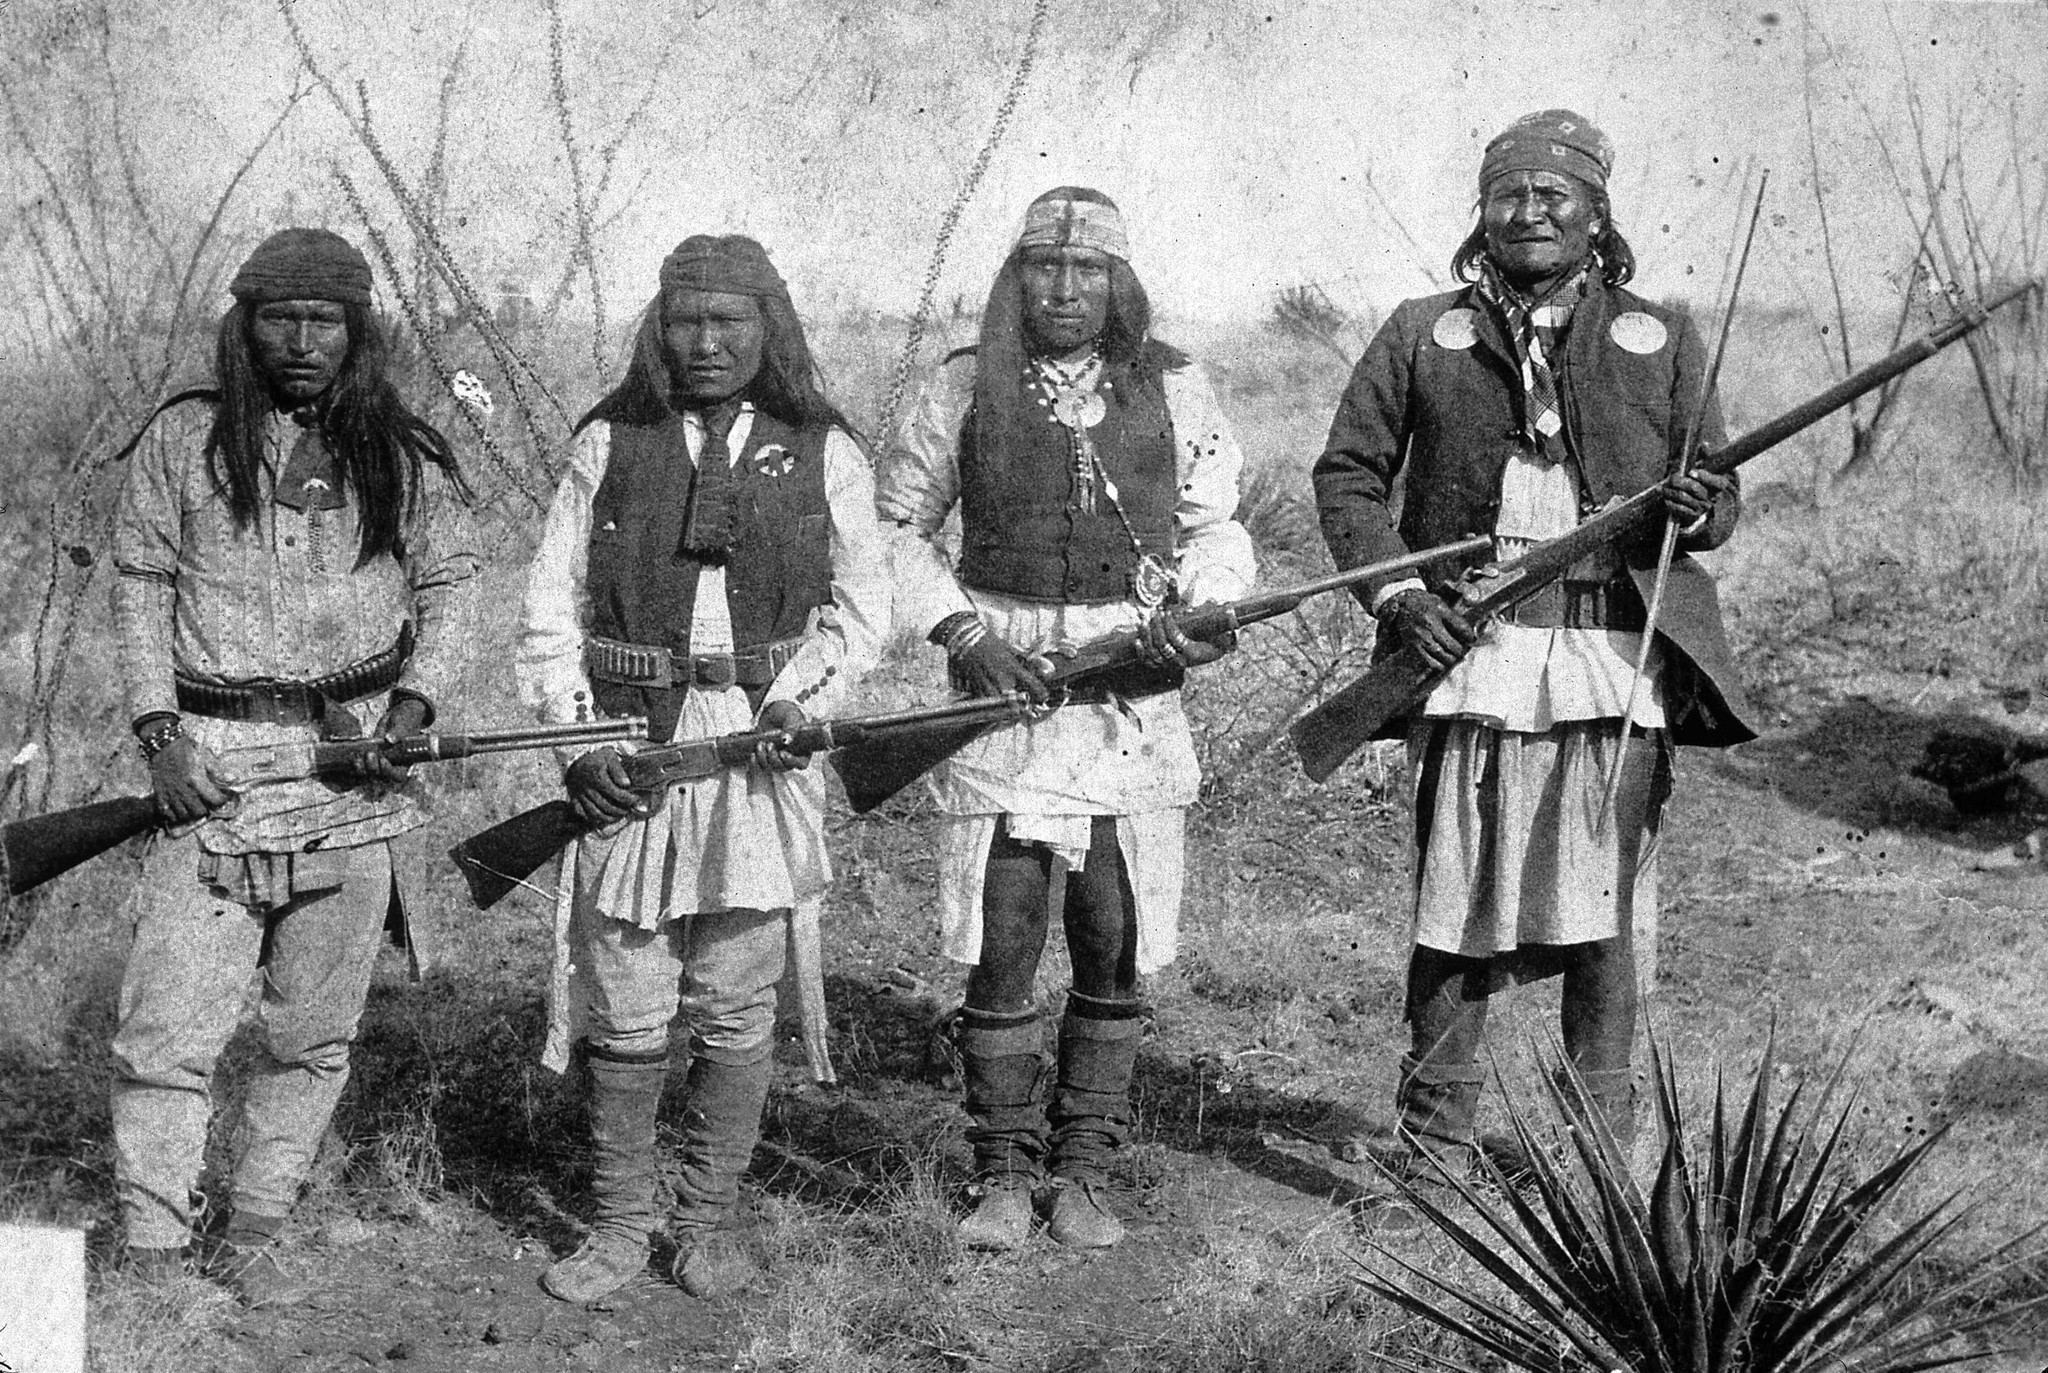 'The Apache Wars' gives history of forgotten conflict ...